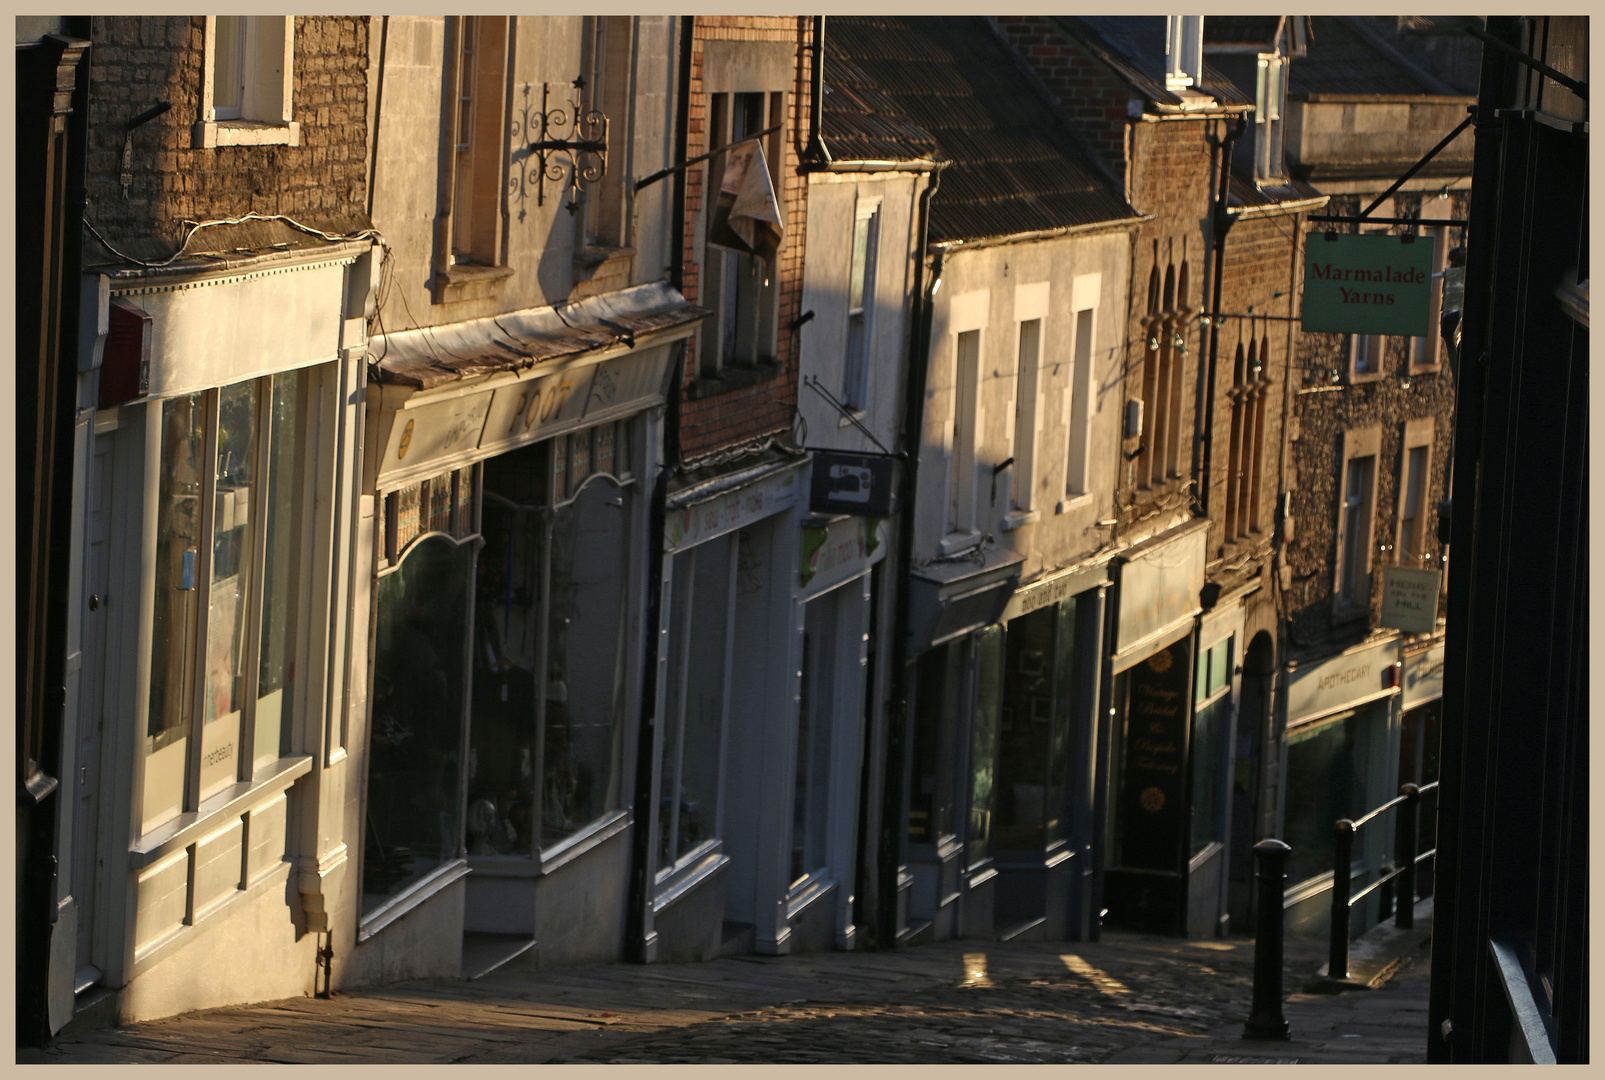 catherine Street Frome early morning 14